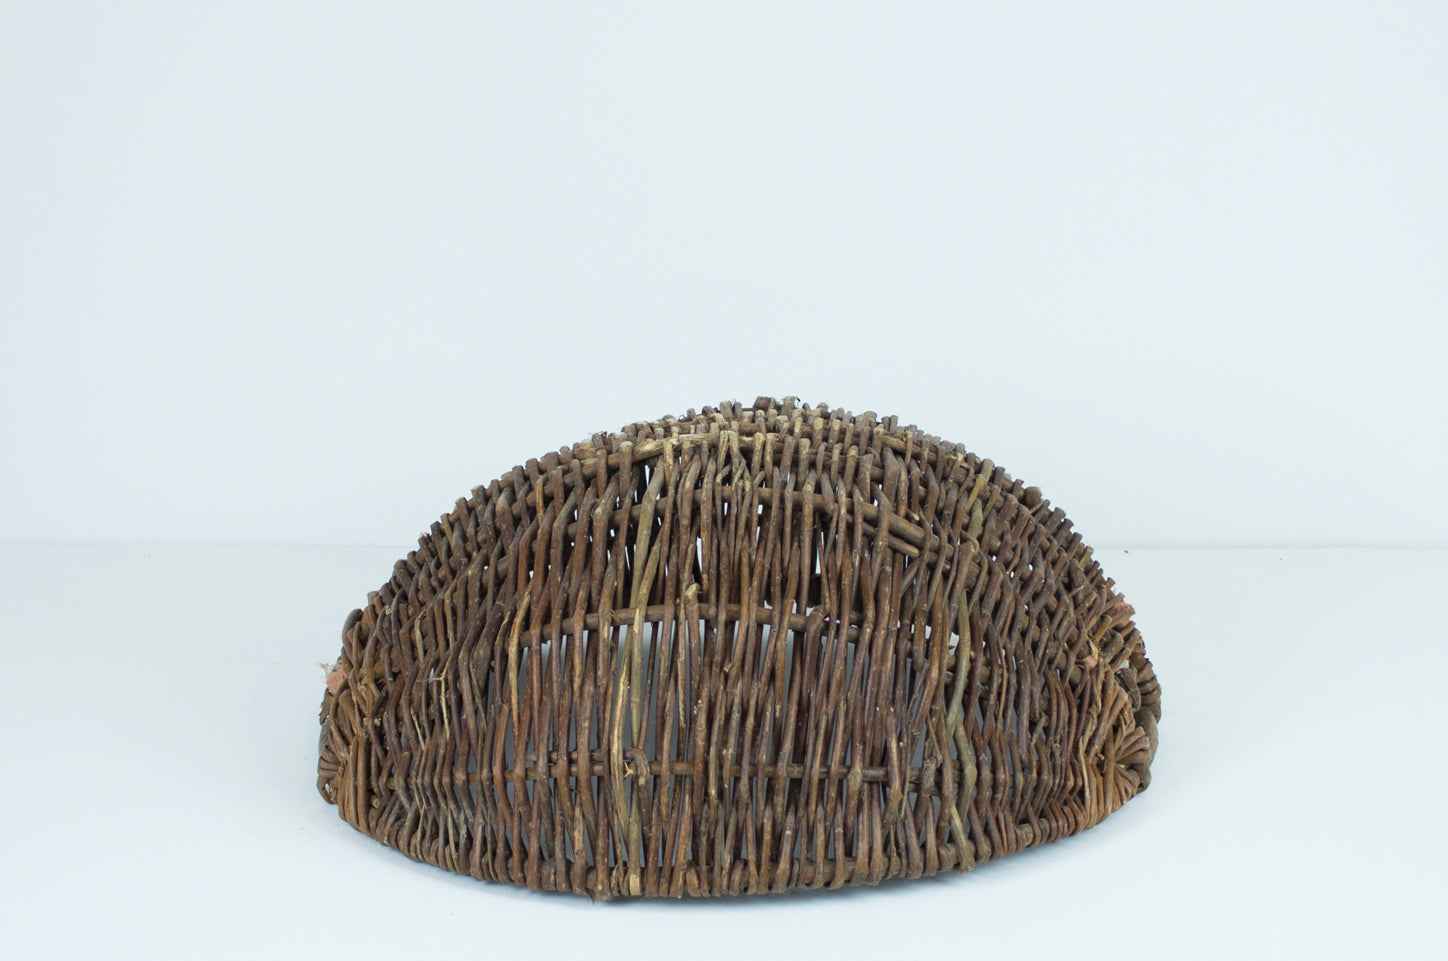 Woven Willow Basket